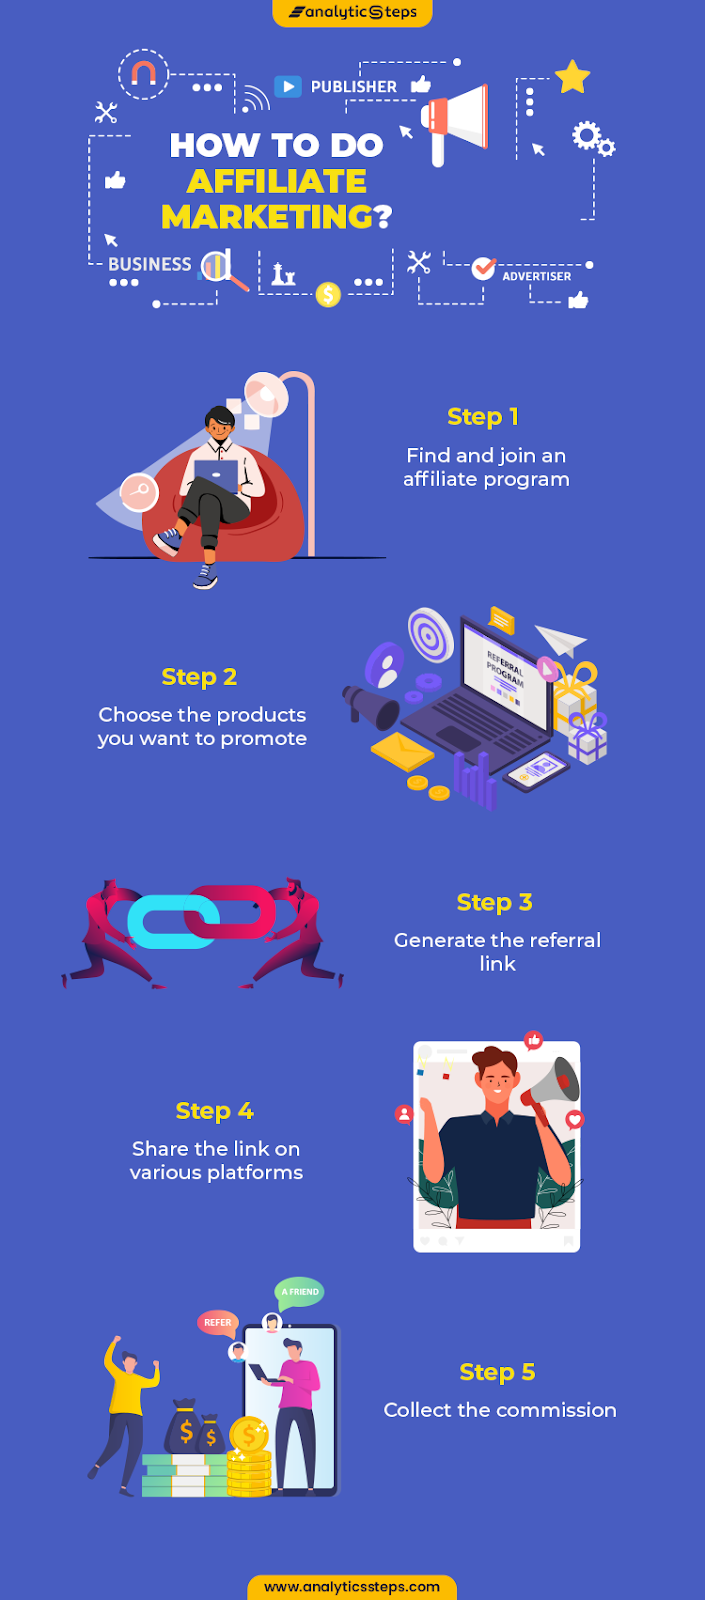 Image shows the steps of affiliate marketing: 1. Find and join an affiliate program 2. Choose the products you want to promote 3.Generate the referral link 4. Share the links on various platforms 5. Collect the commission